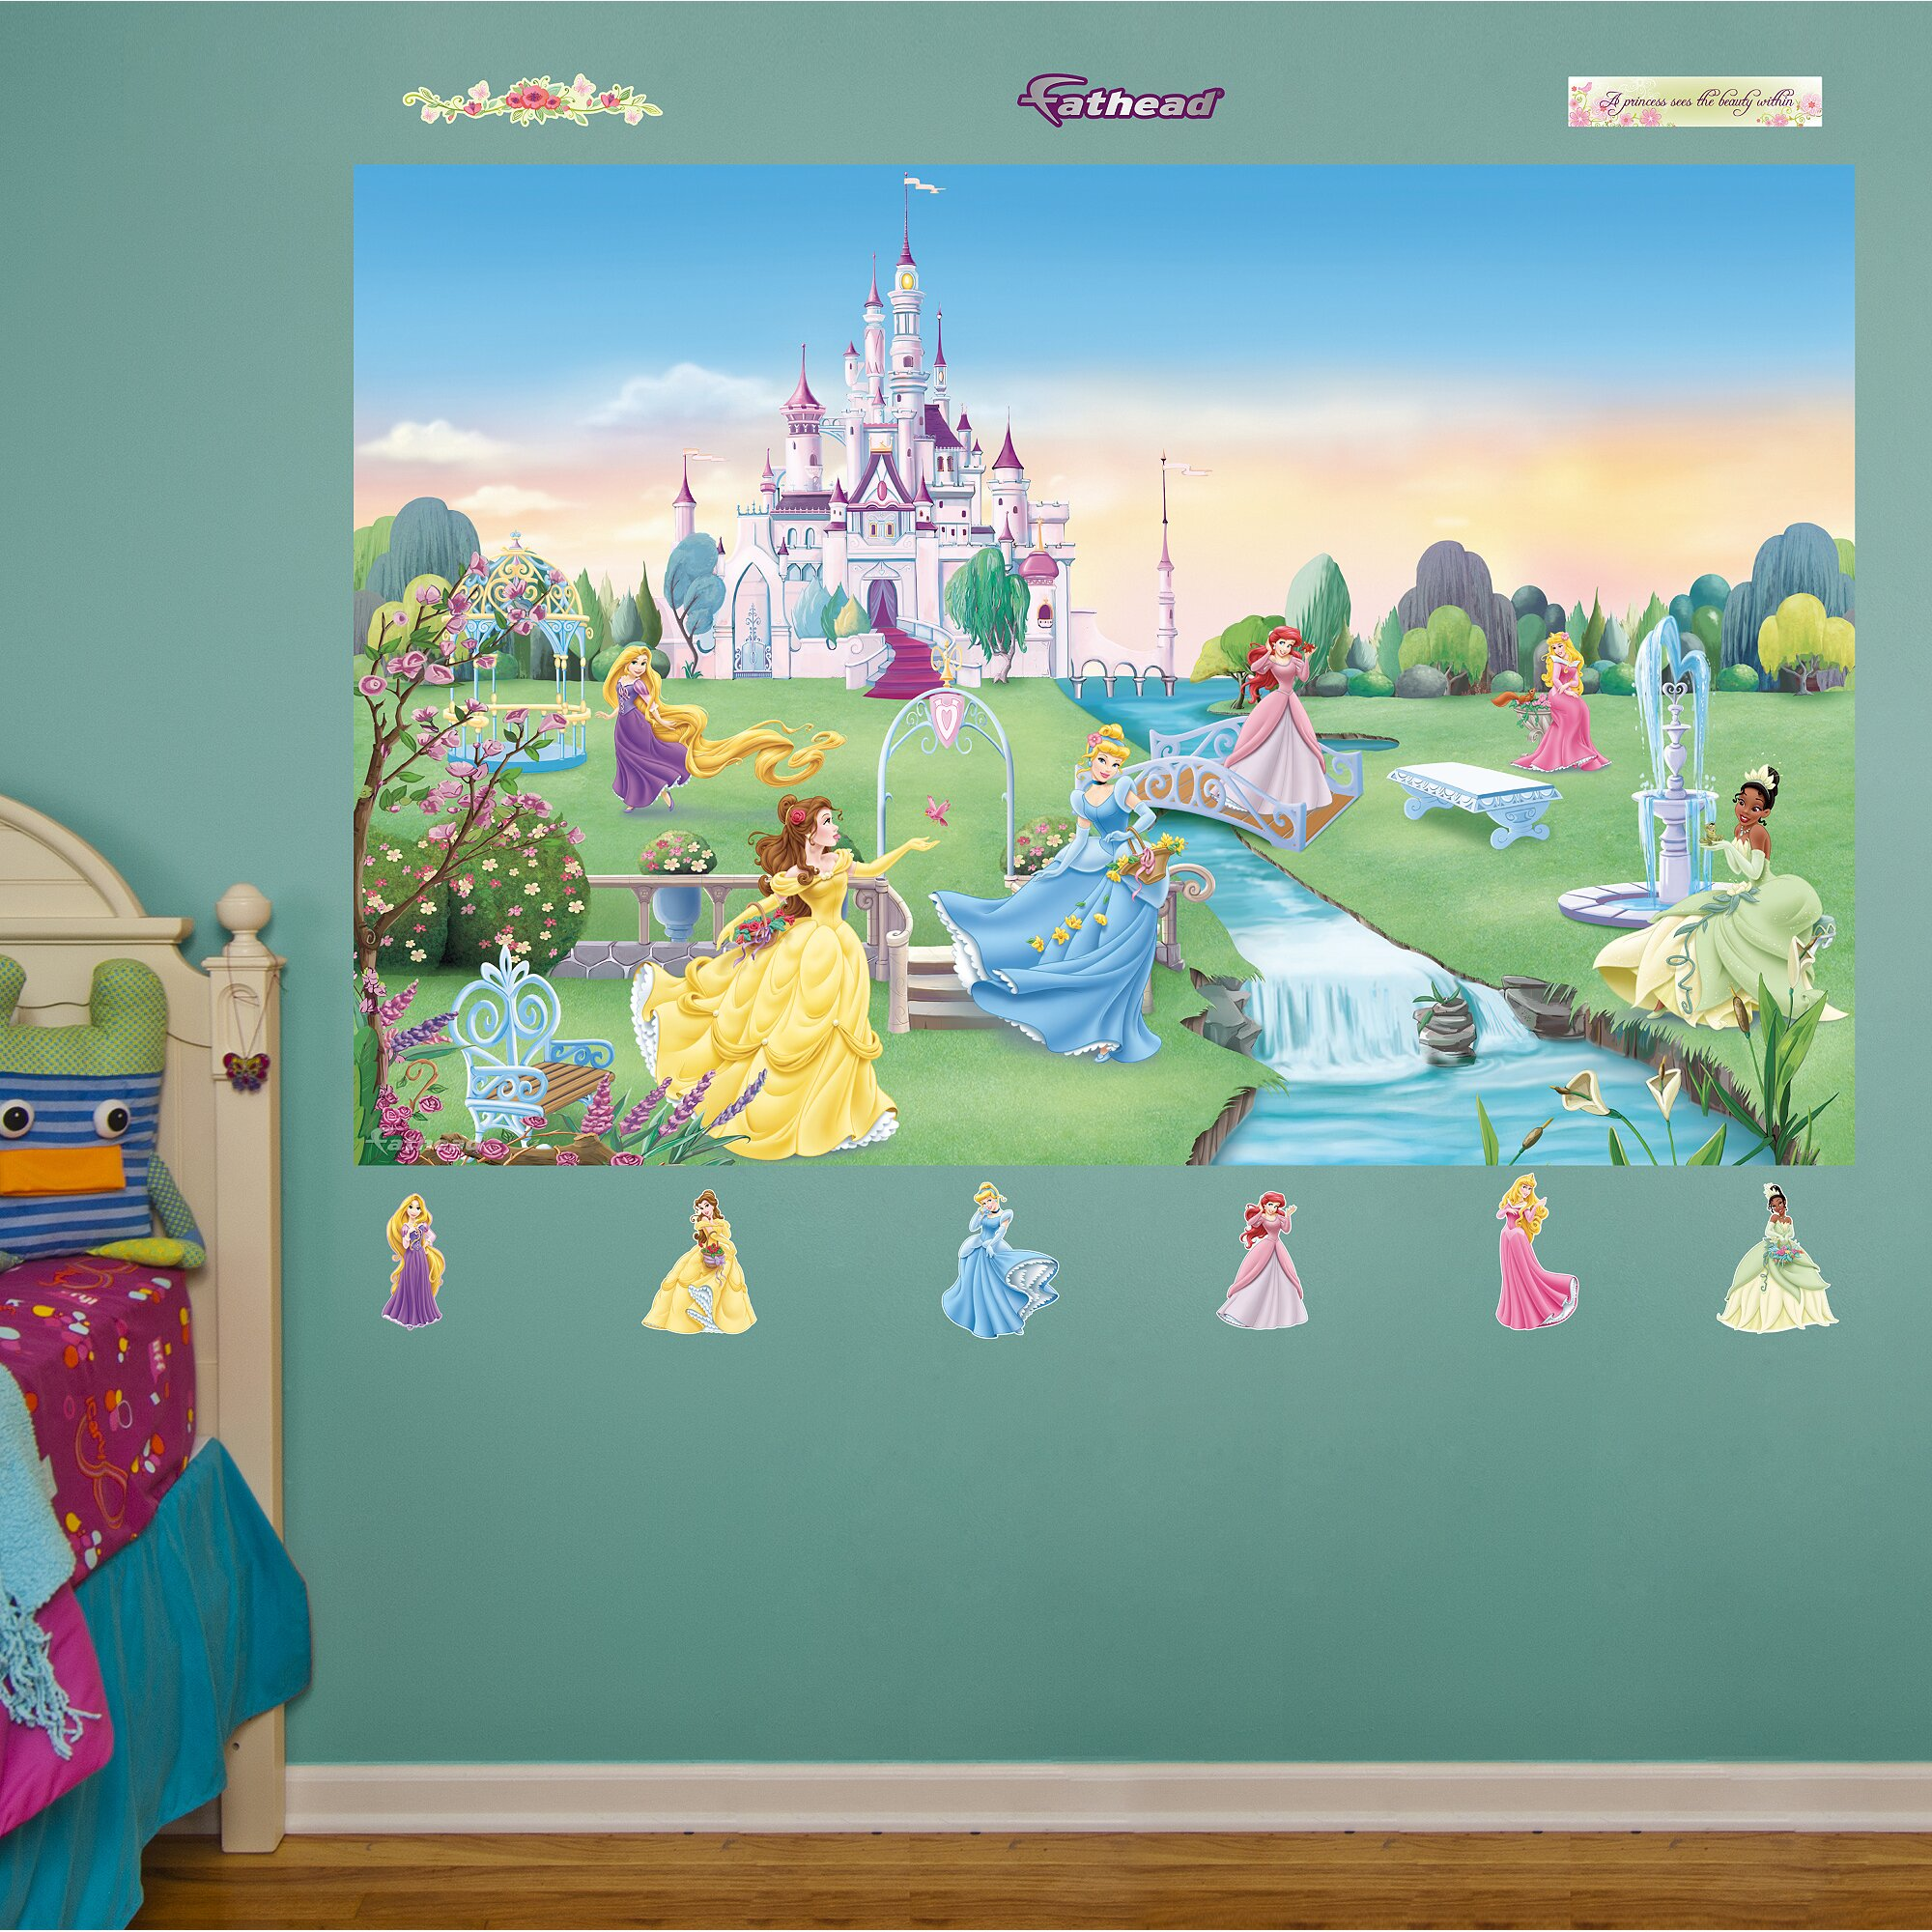 Fathead disney princess wall mural reviews wayfair for Disney princess wall mural tesco